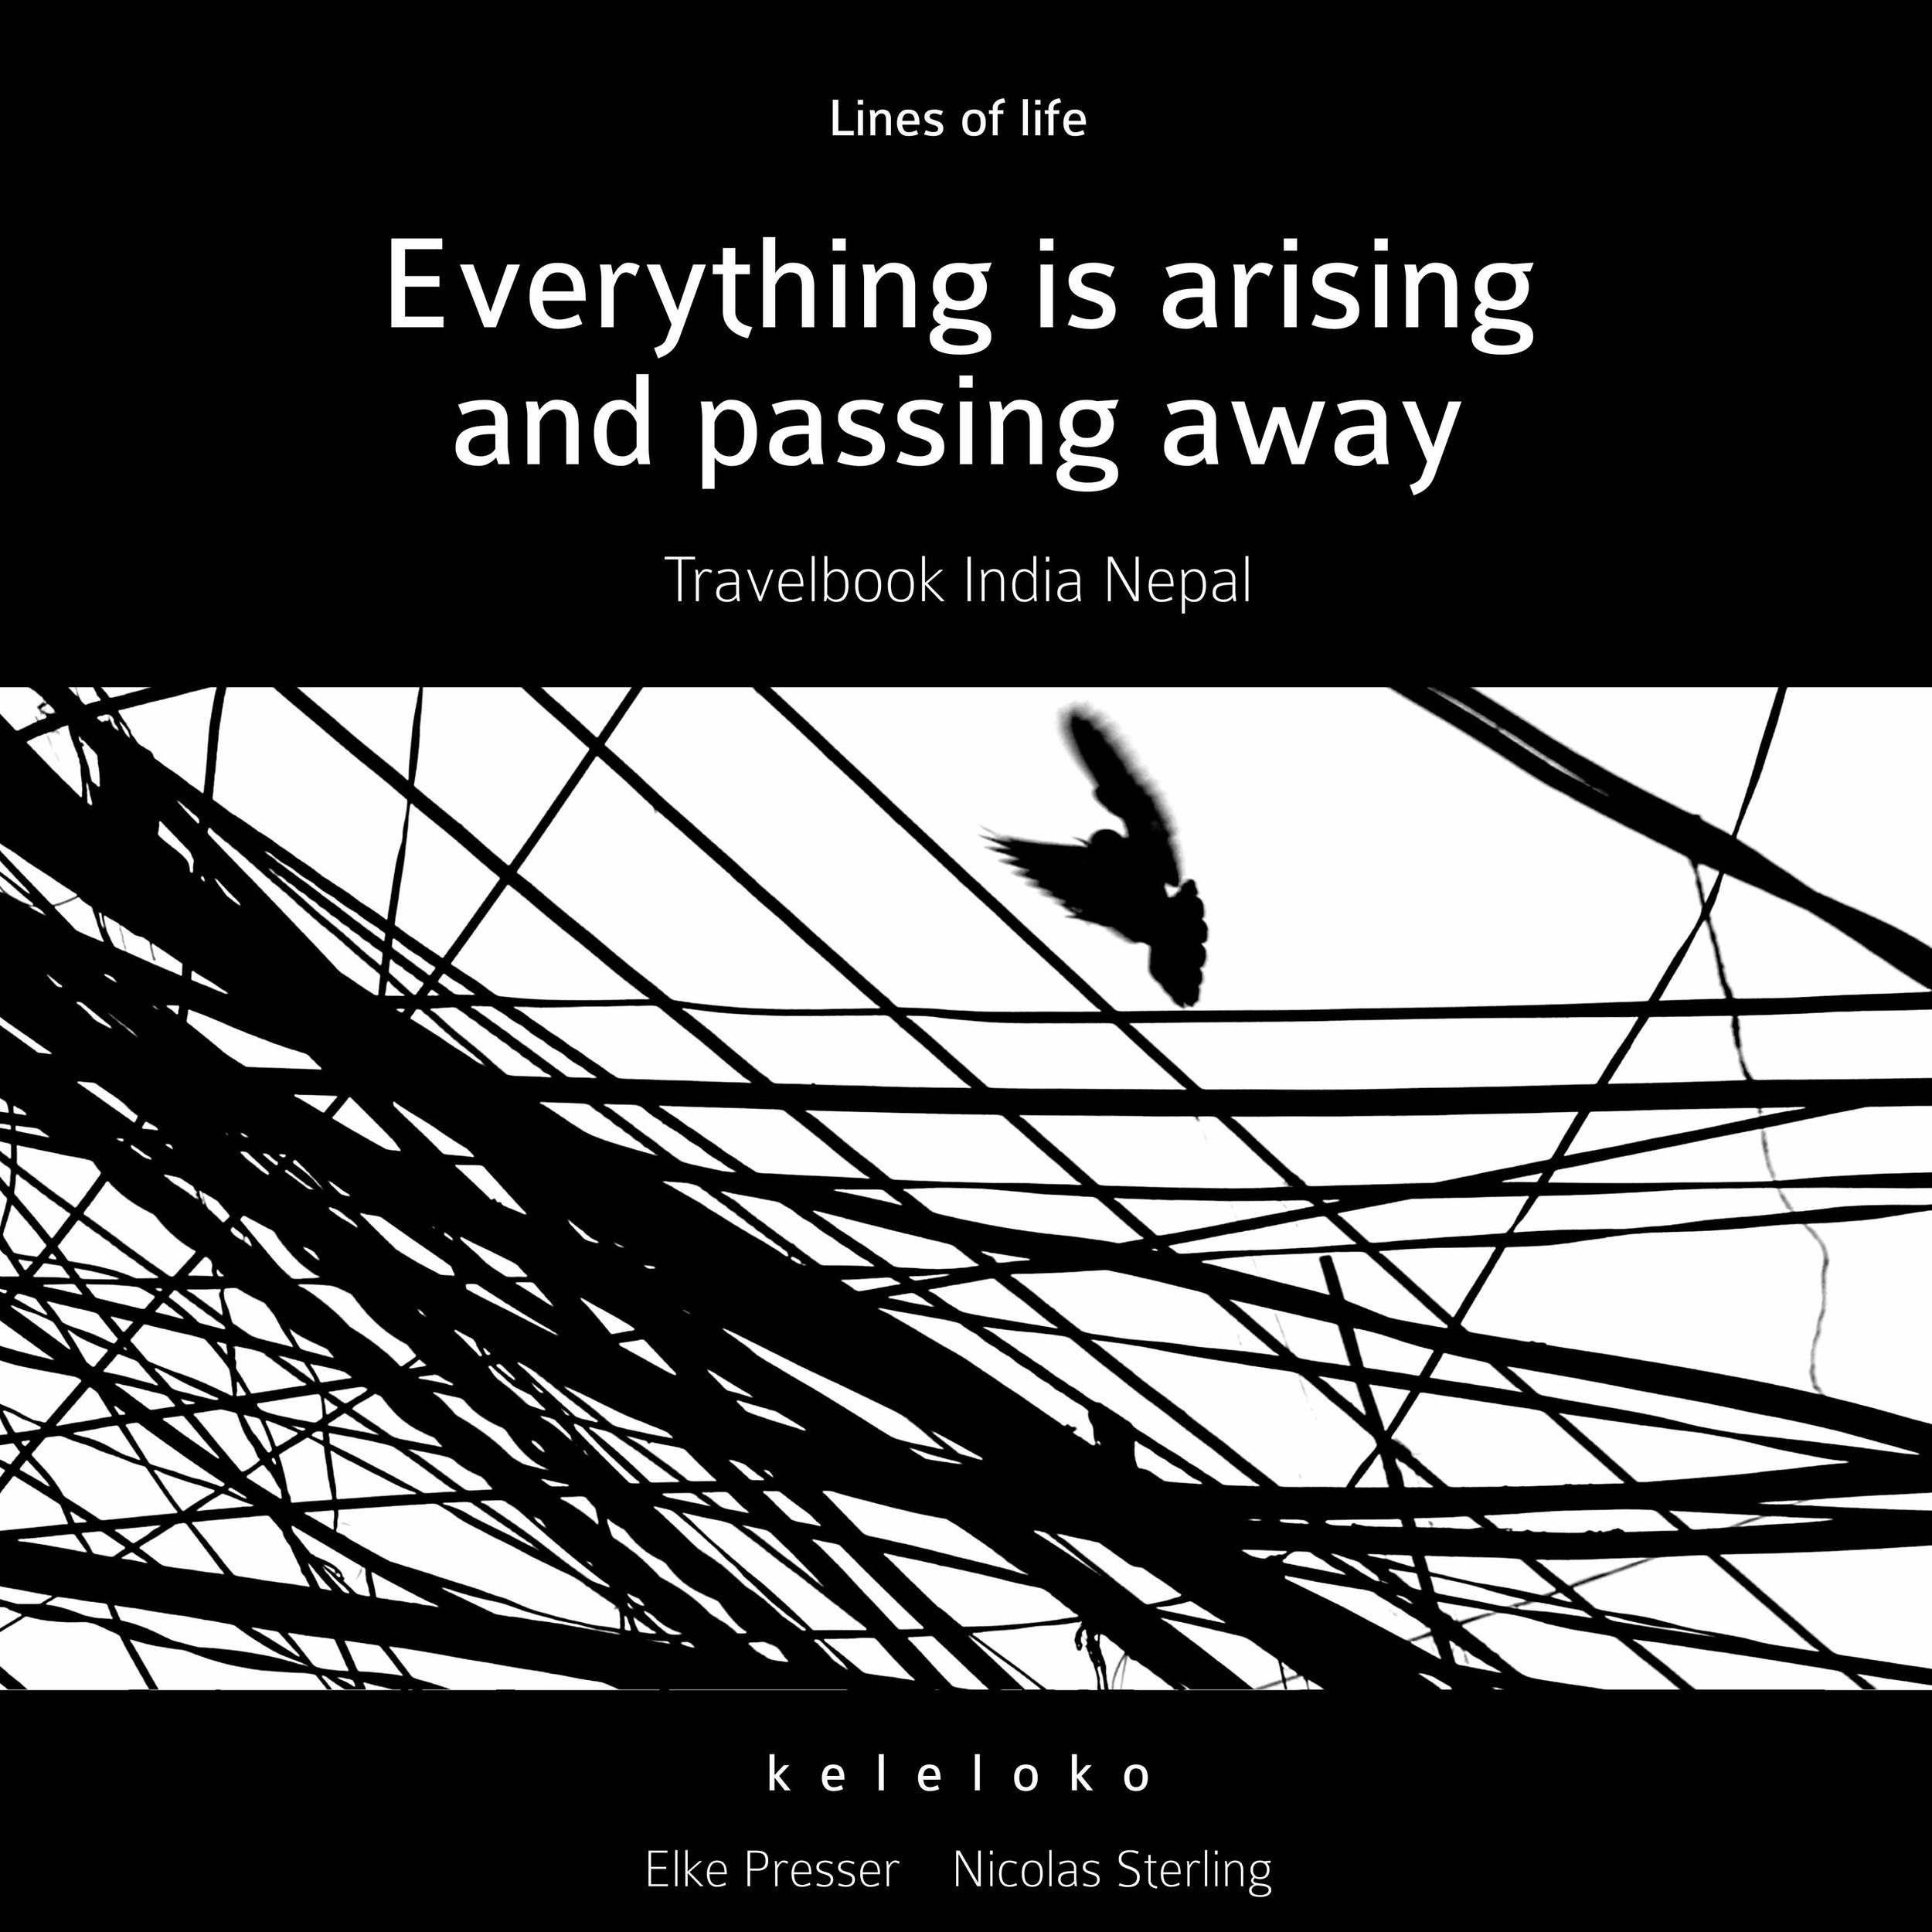 Lines of life - EVERYTHING IS ARISING AND PASSING AWAY - by k e l e l o k o